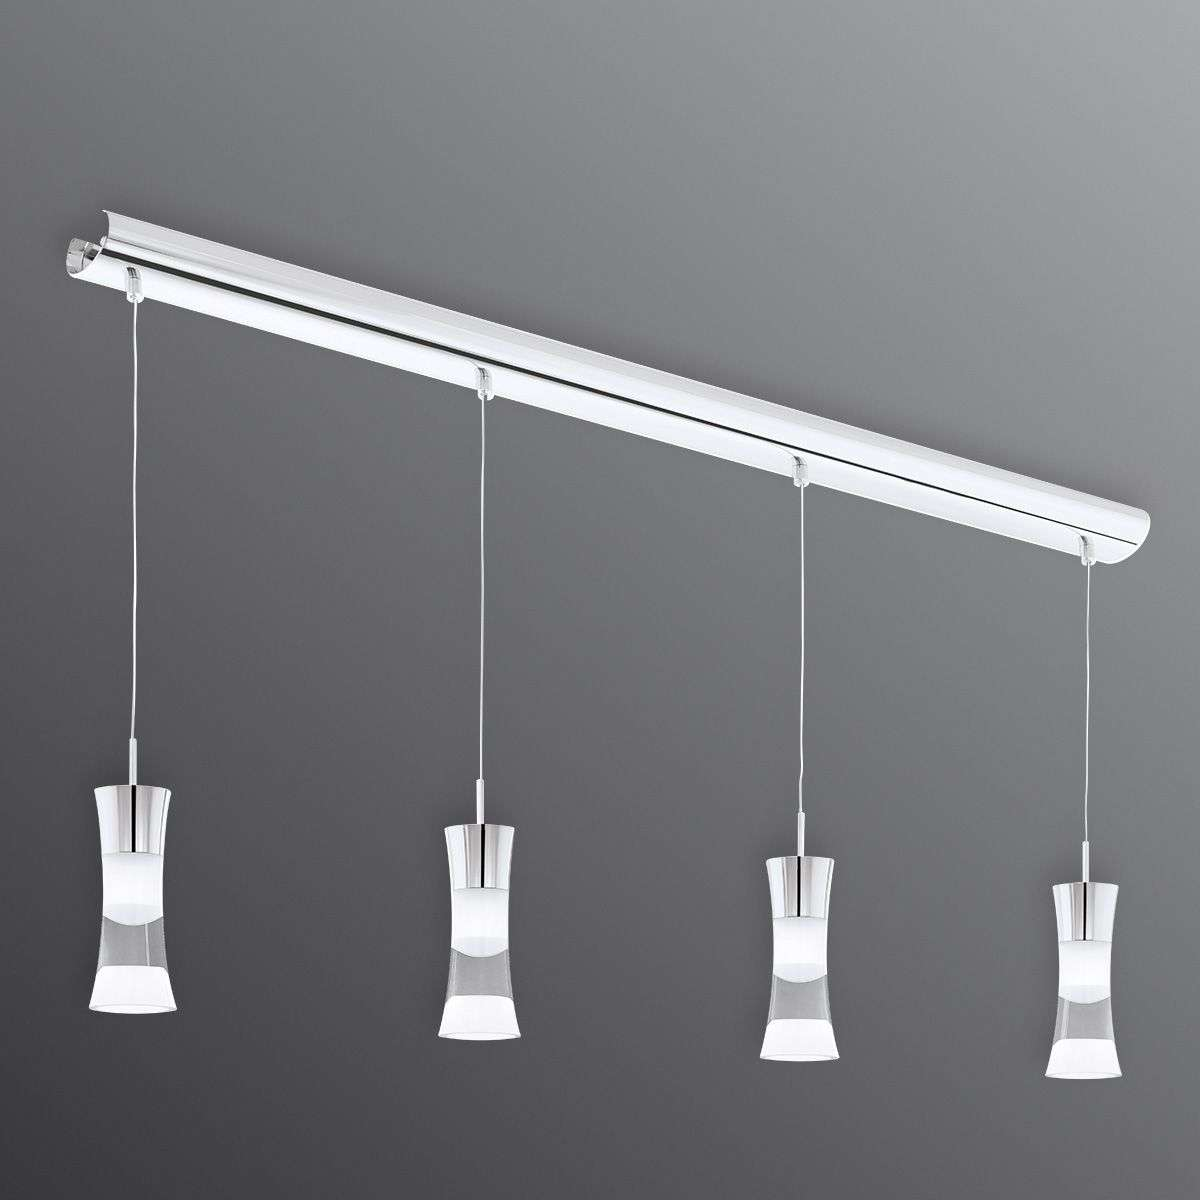 4 lichtbronnen LED hanglamp Pancento uit staal-3031743-31